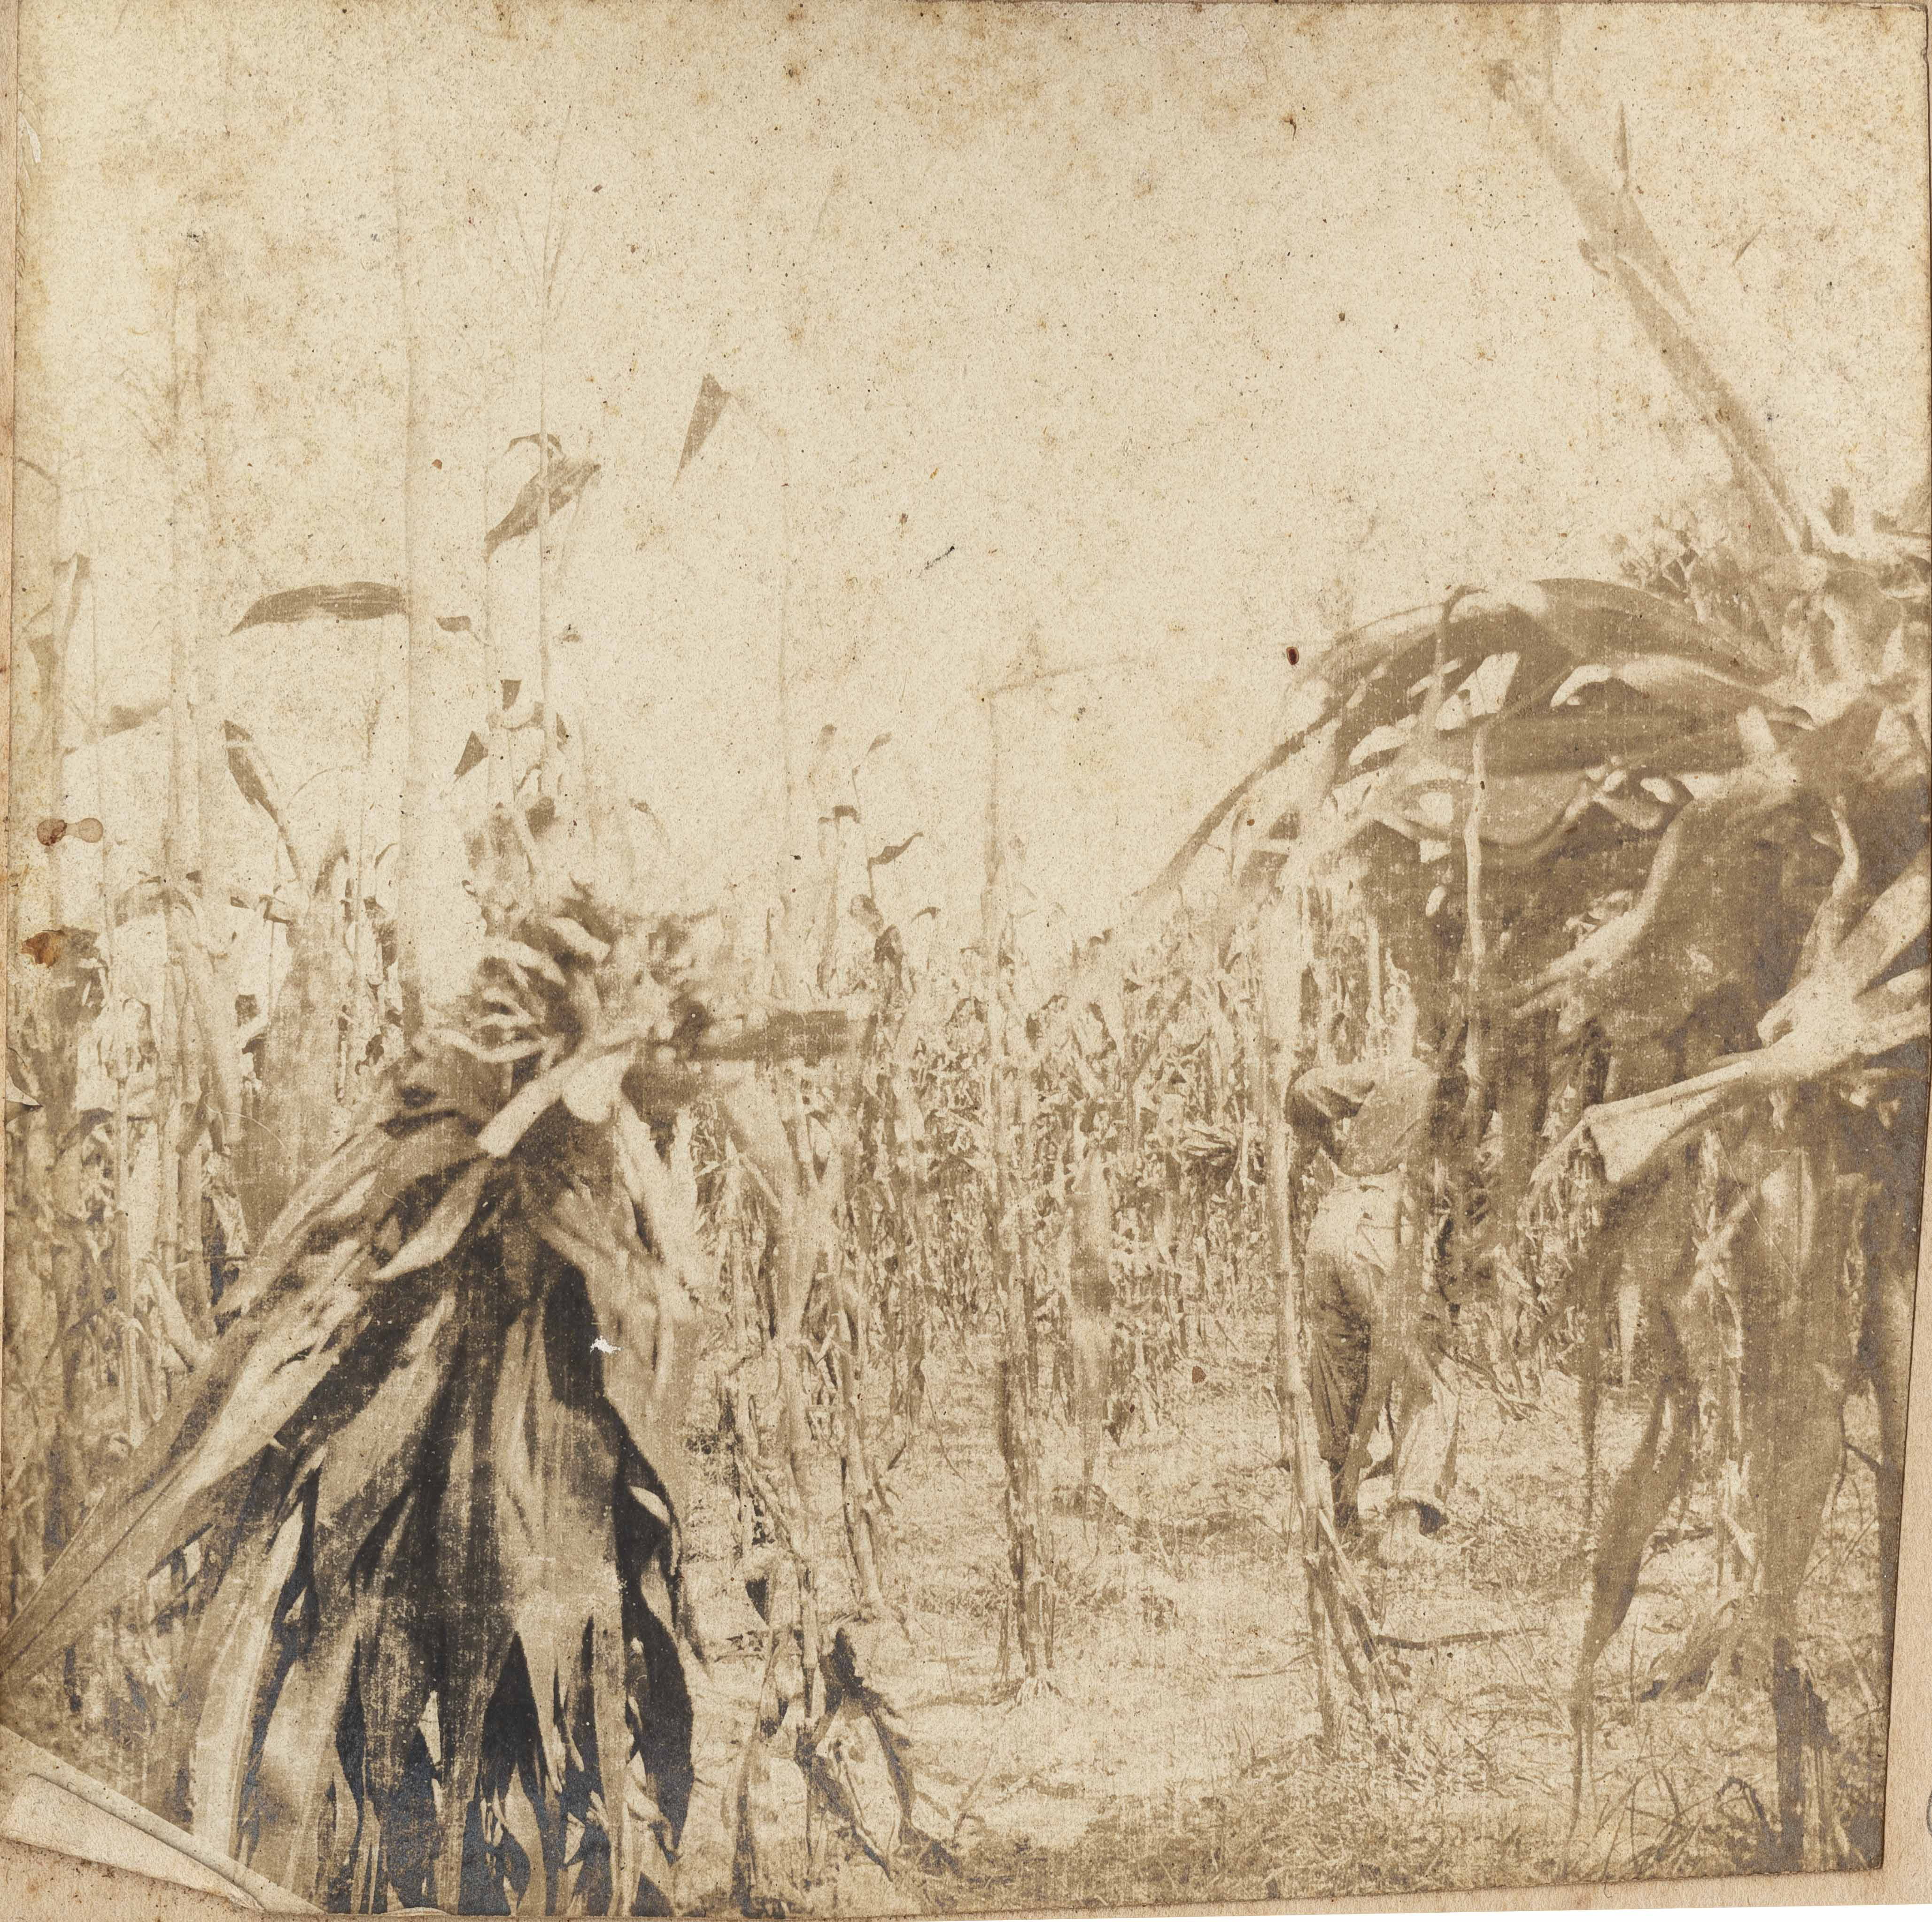 Workers with bundles of corn